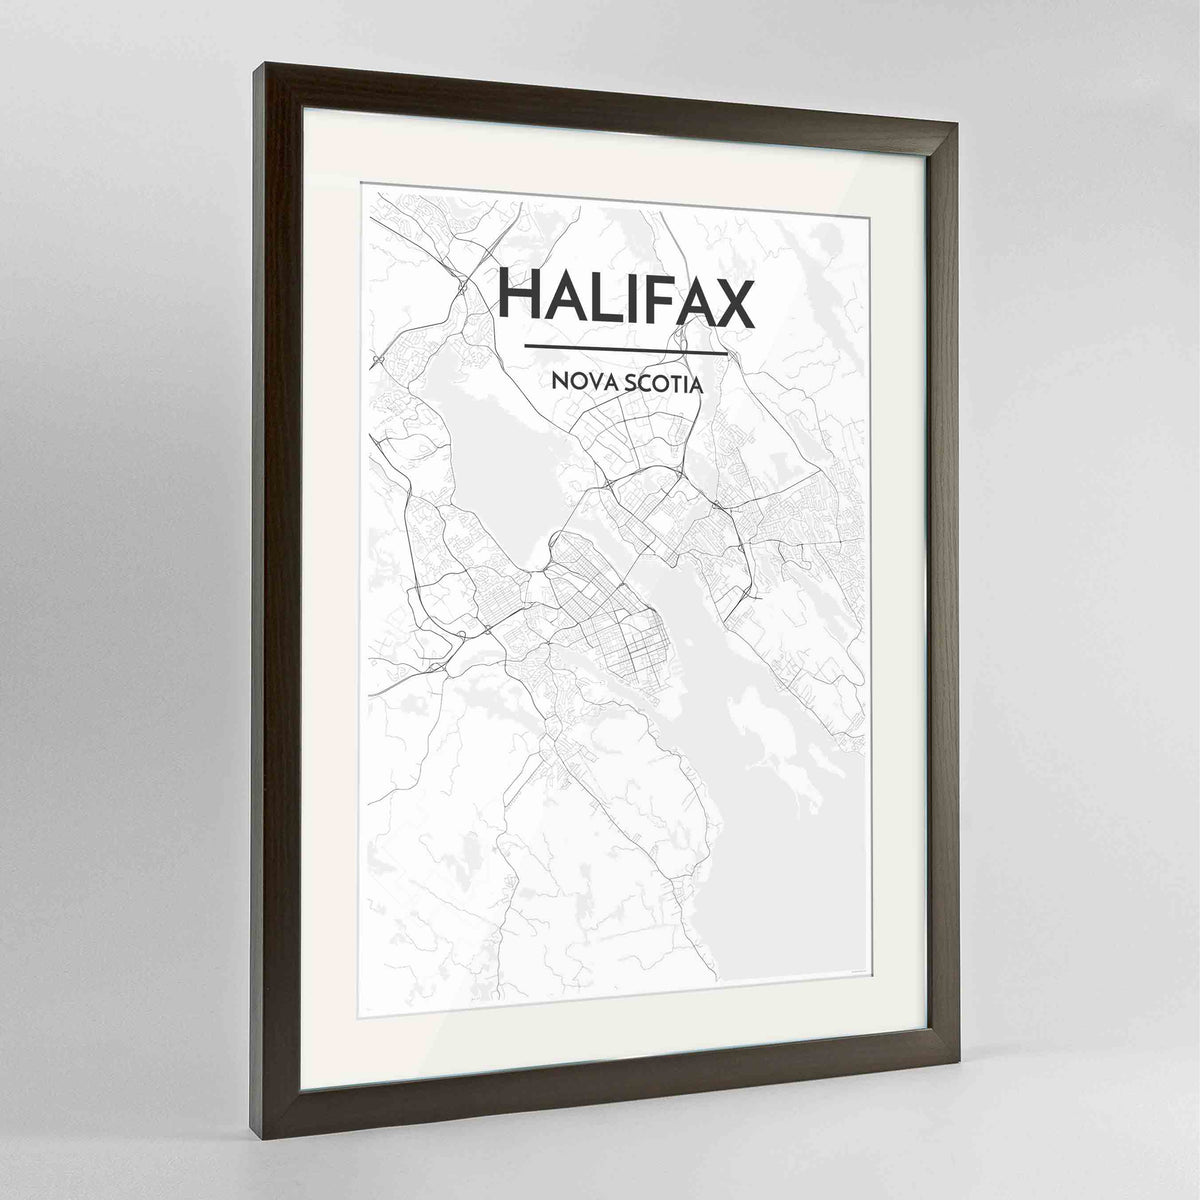 "Framed Halifax City Map 24x36"" Contemporary Walnut frame Point Two Design Group"